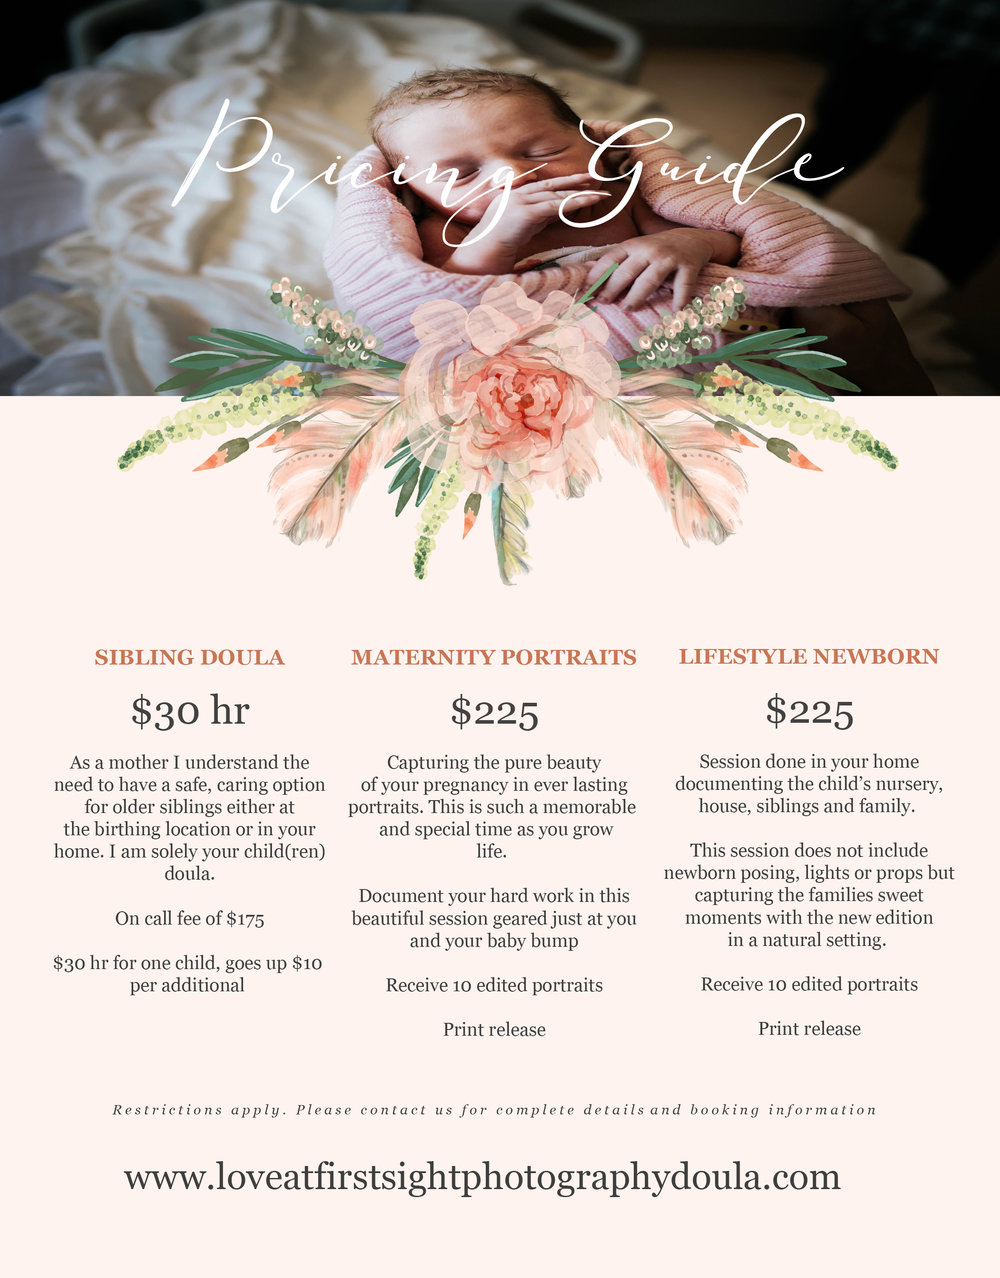 love at first sight photography & doula services  investment guide